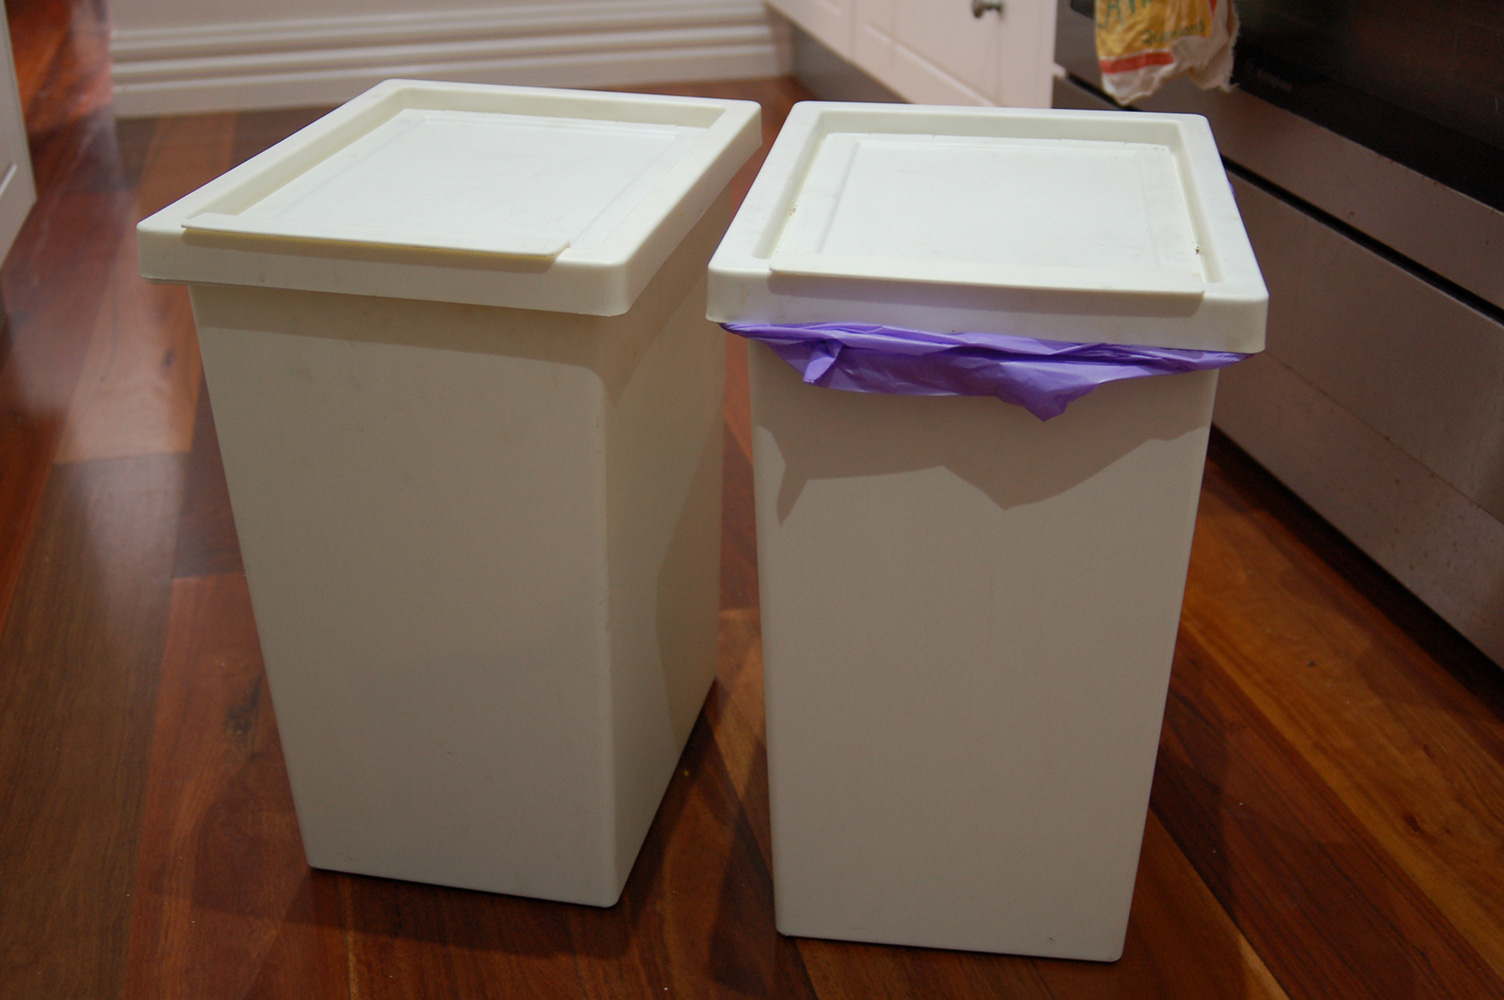 Installing Ikea Filur Bins Into A Kitchen Cupboard Without Drilling Holes